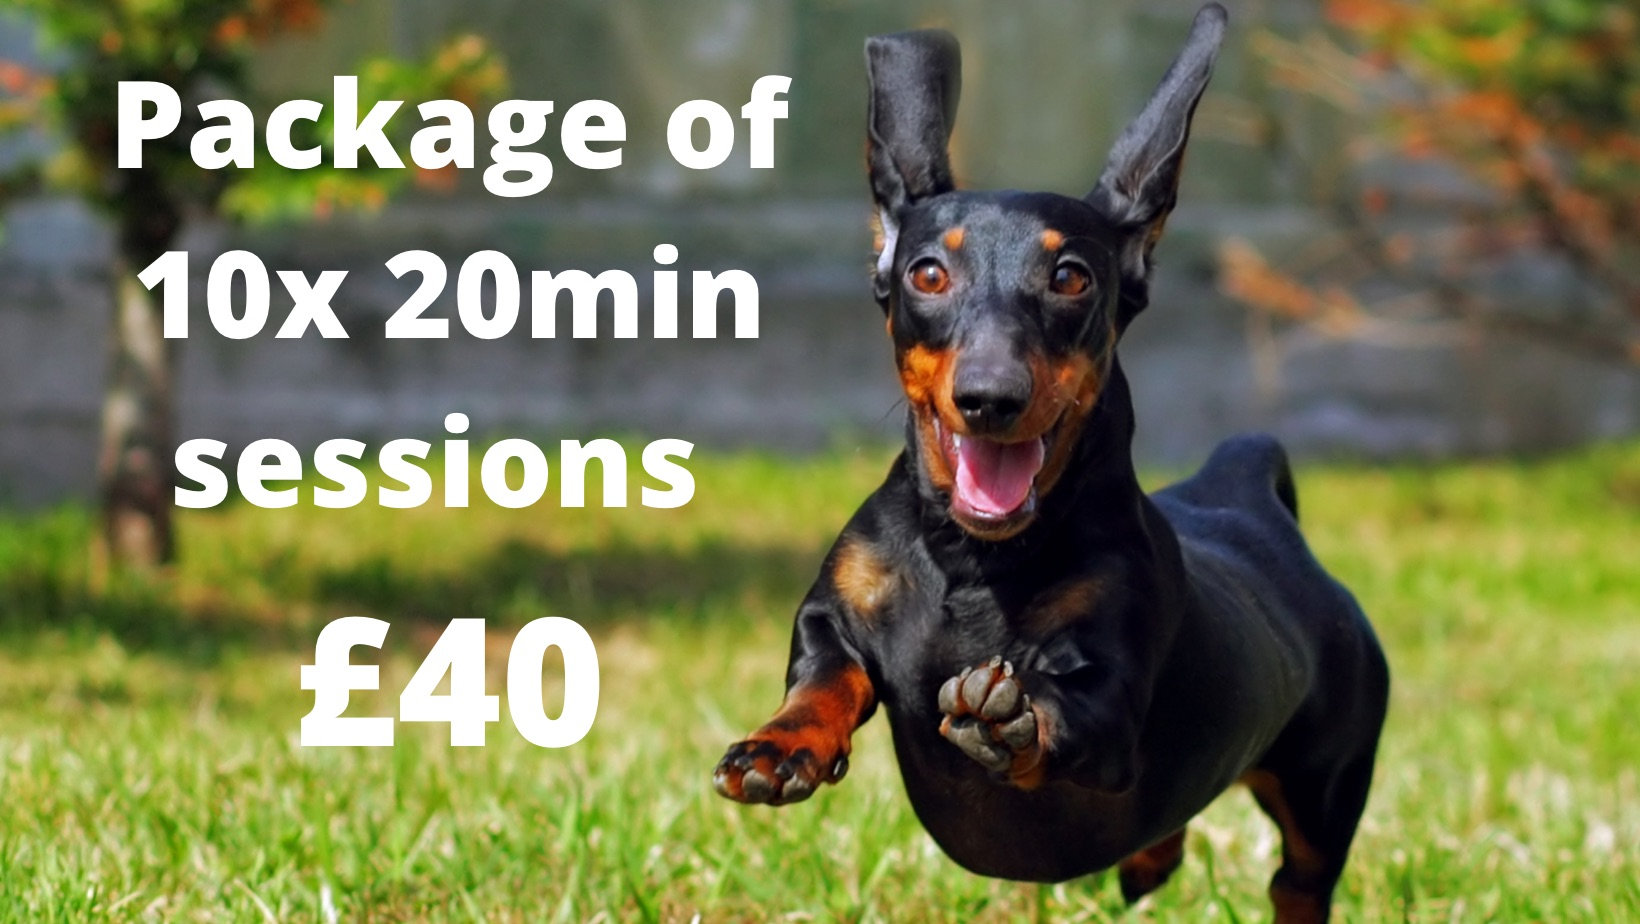 £40 for ten 20 minute sessions